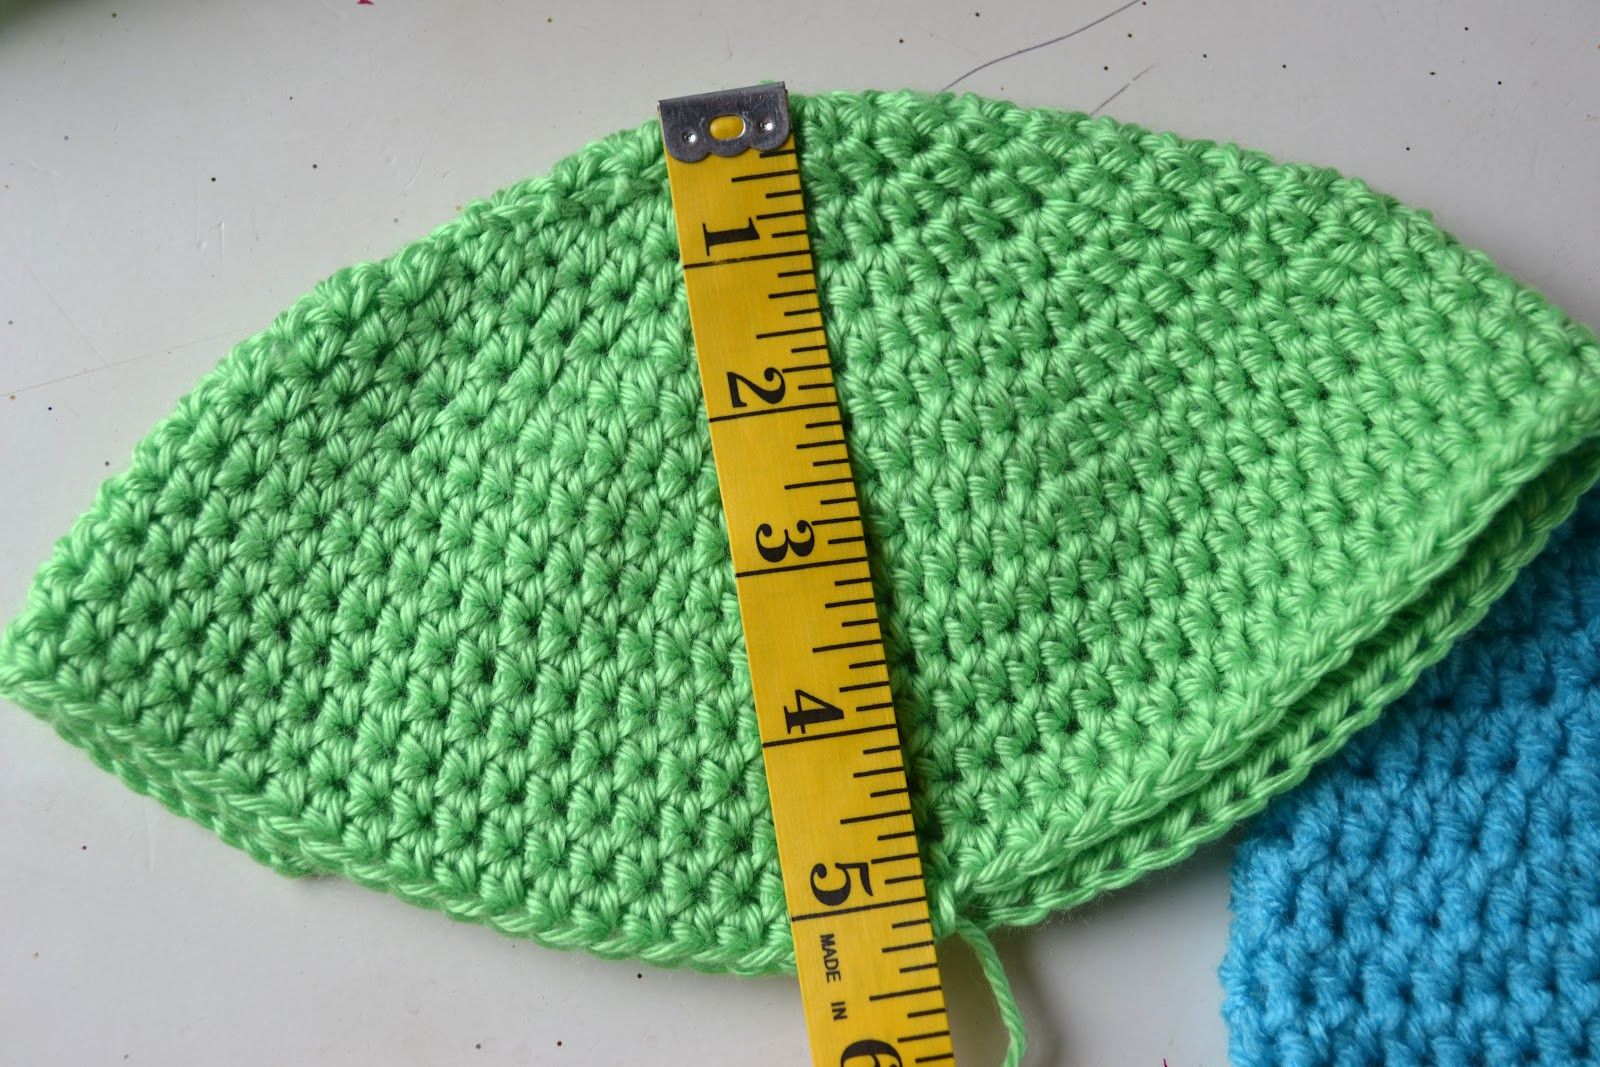 Crochet Hat Sizes New Crochet In Color Still Trying to Customize Hat Sizes Of New 46 Photos Crochet Hat Sizes